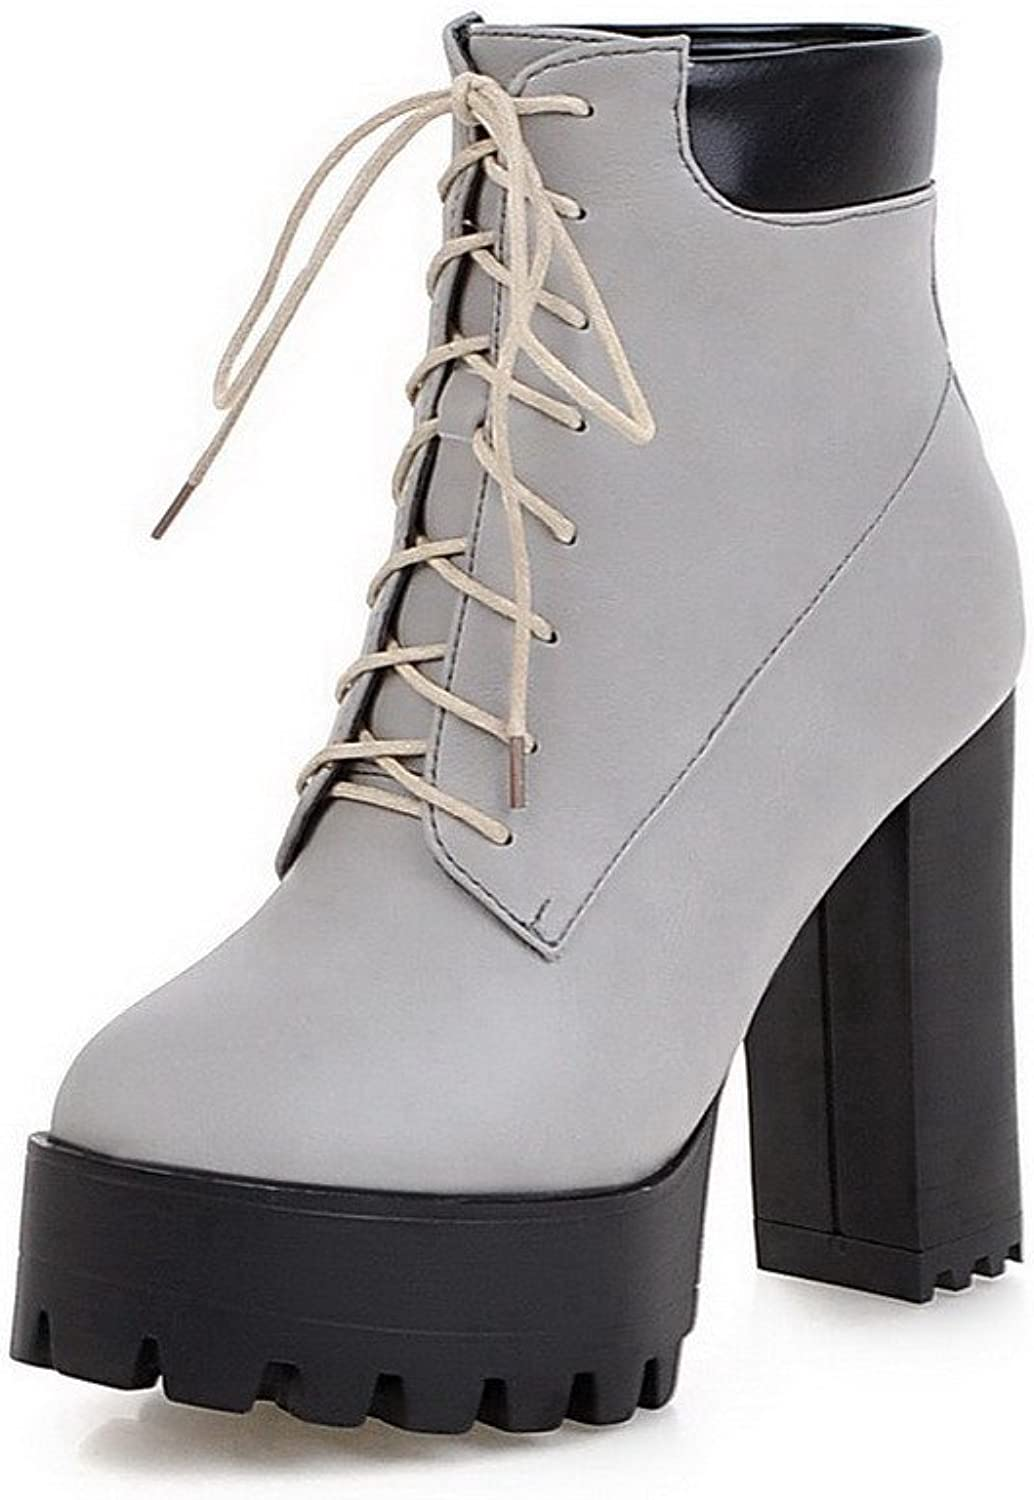 AllhqFashion Women's Soft Material Round Closed Toe Solid Low-top High-Heels Boots with Knot